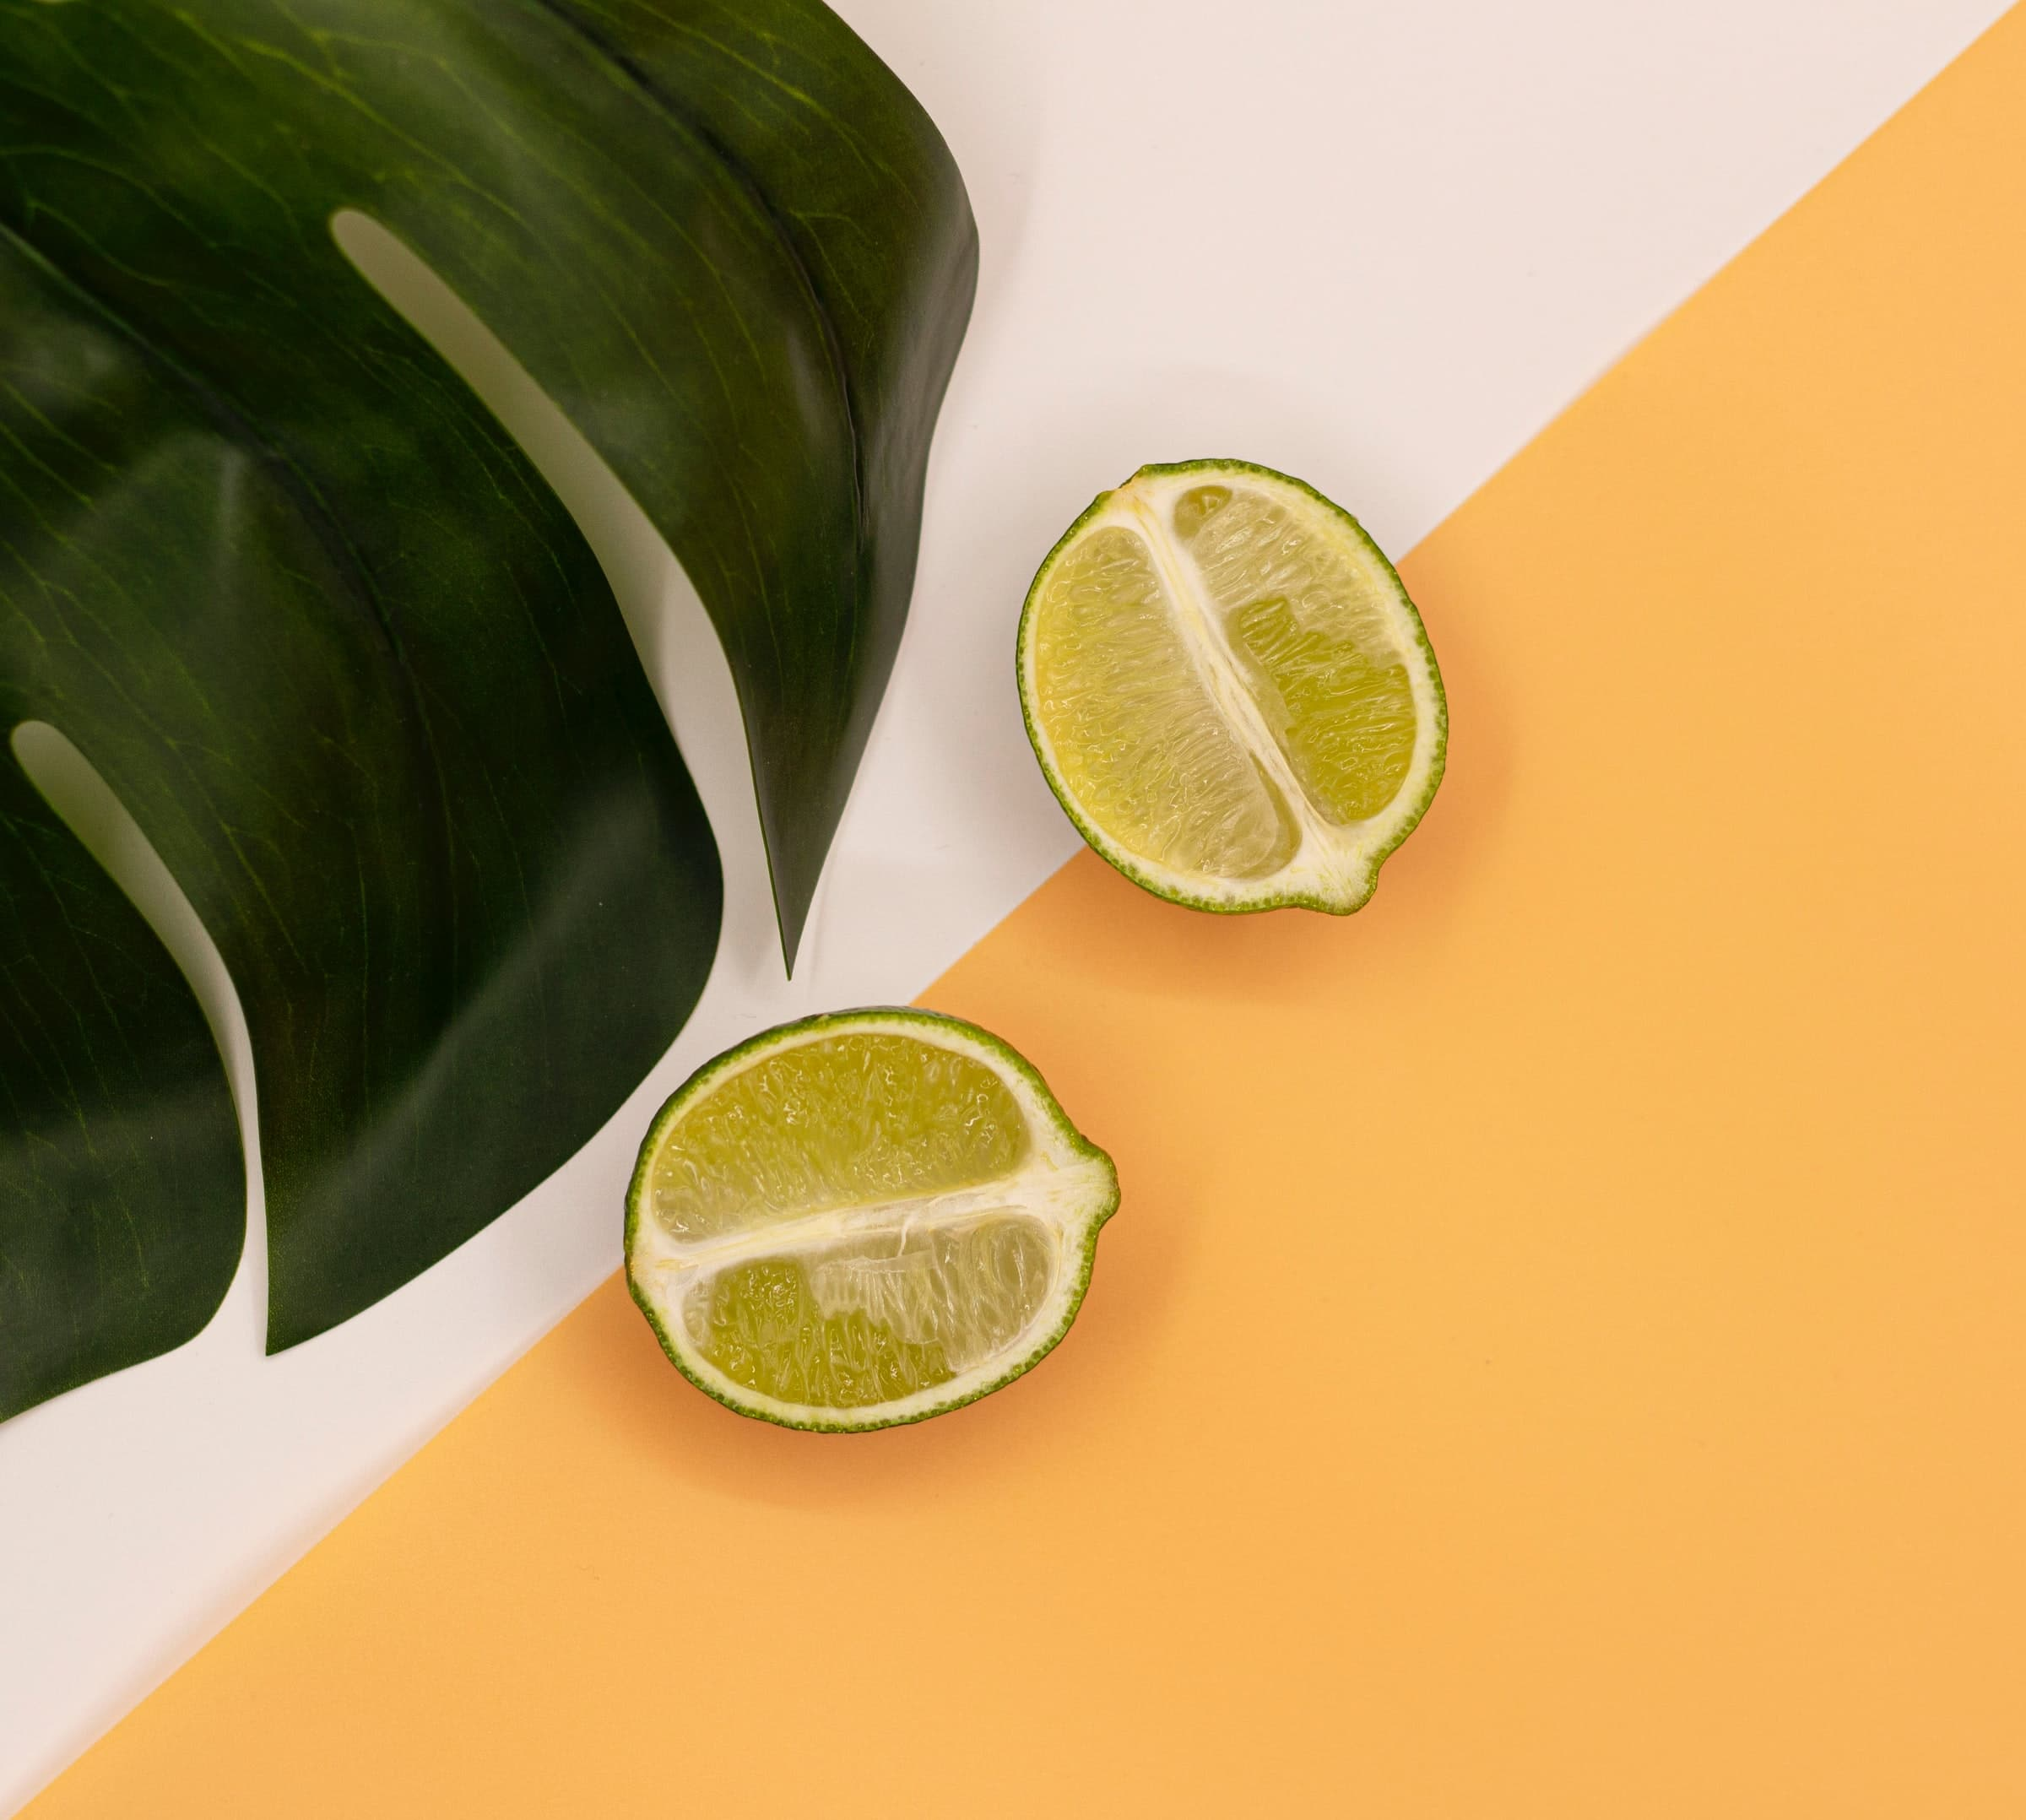 Two half limes cut in half by a green leaf on an orange and white background